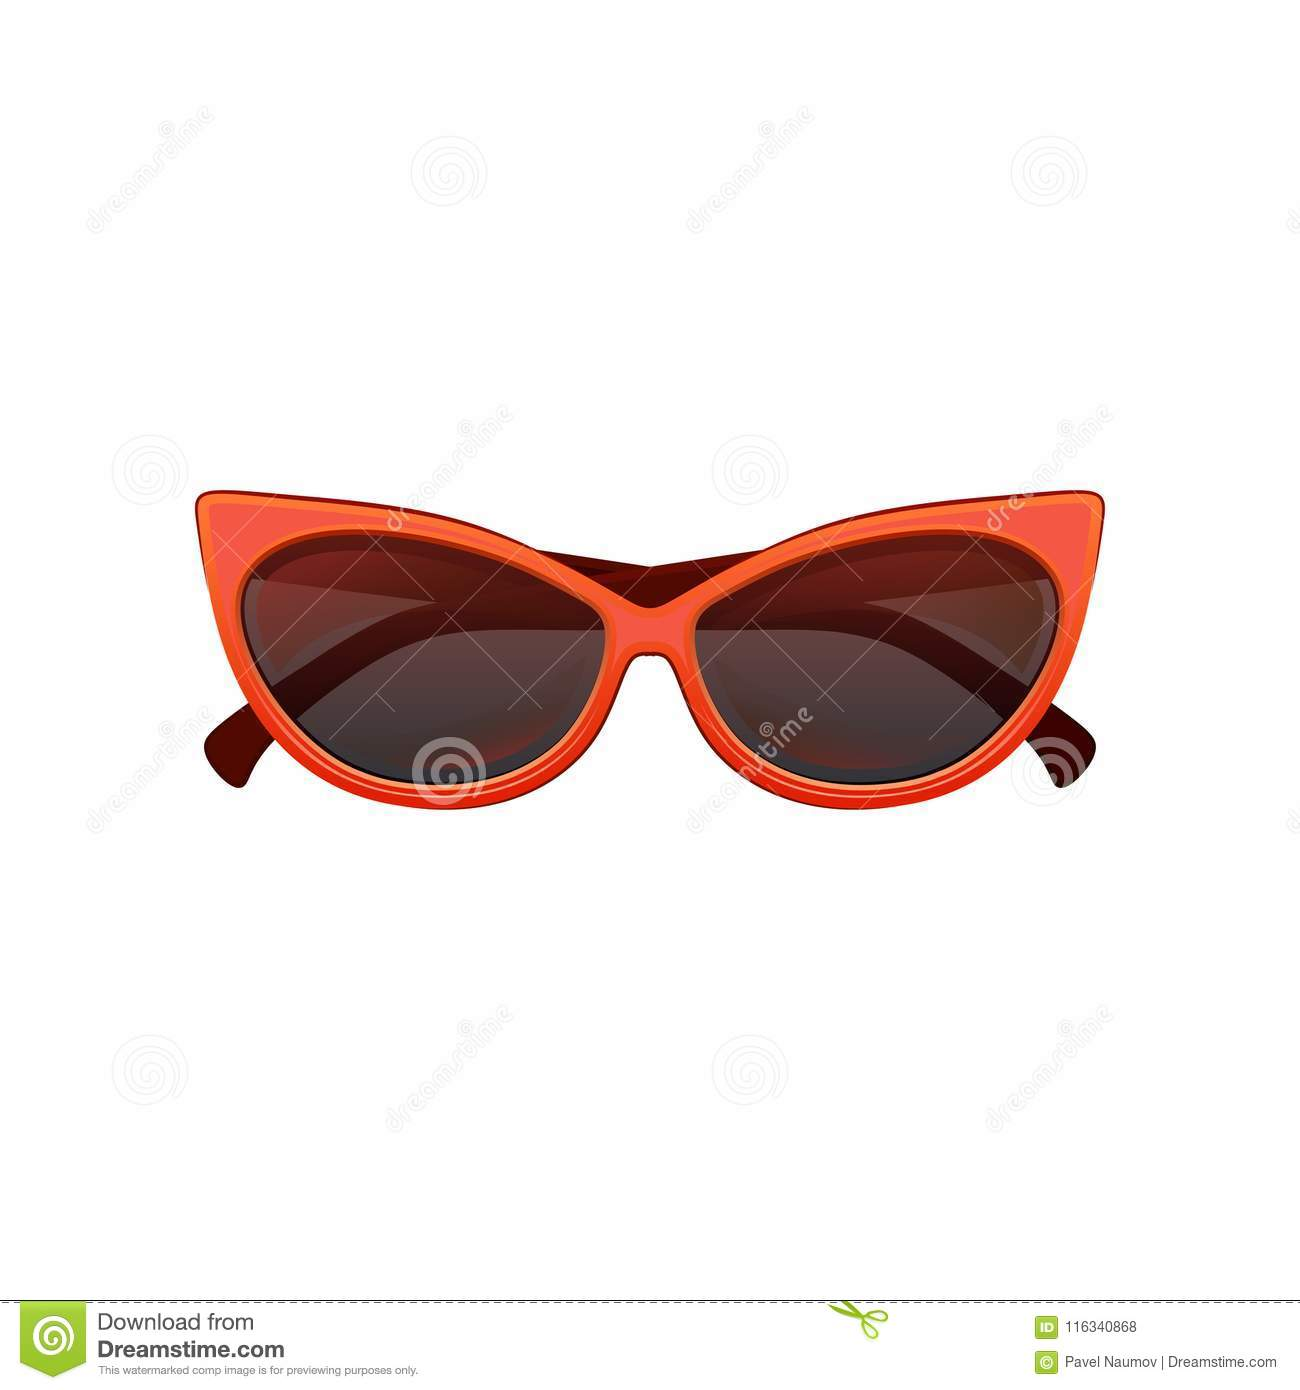 c06999cbdd Glamour cat eye sunglasses with black tinted lenses and bright red plastic  frame. Stylish protective